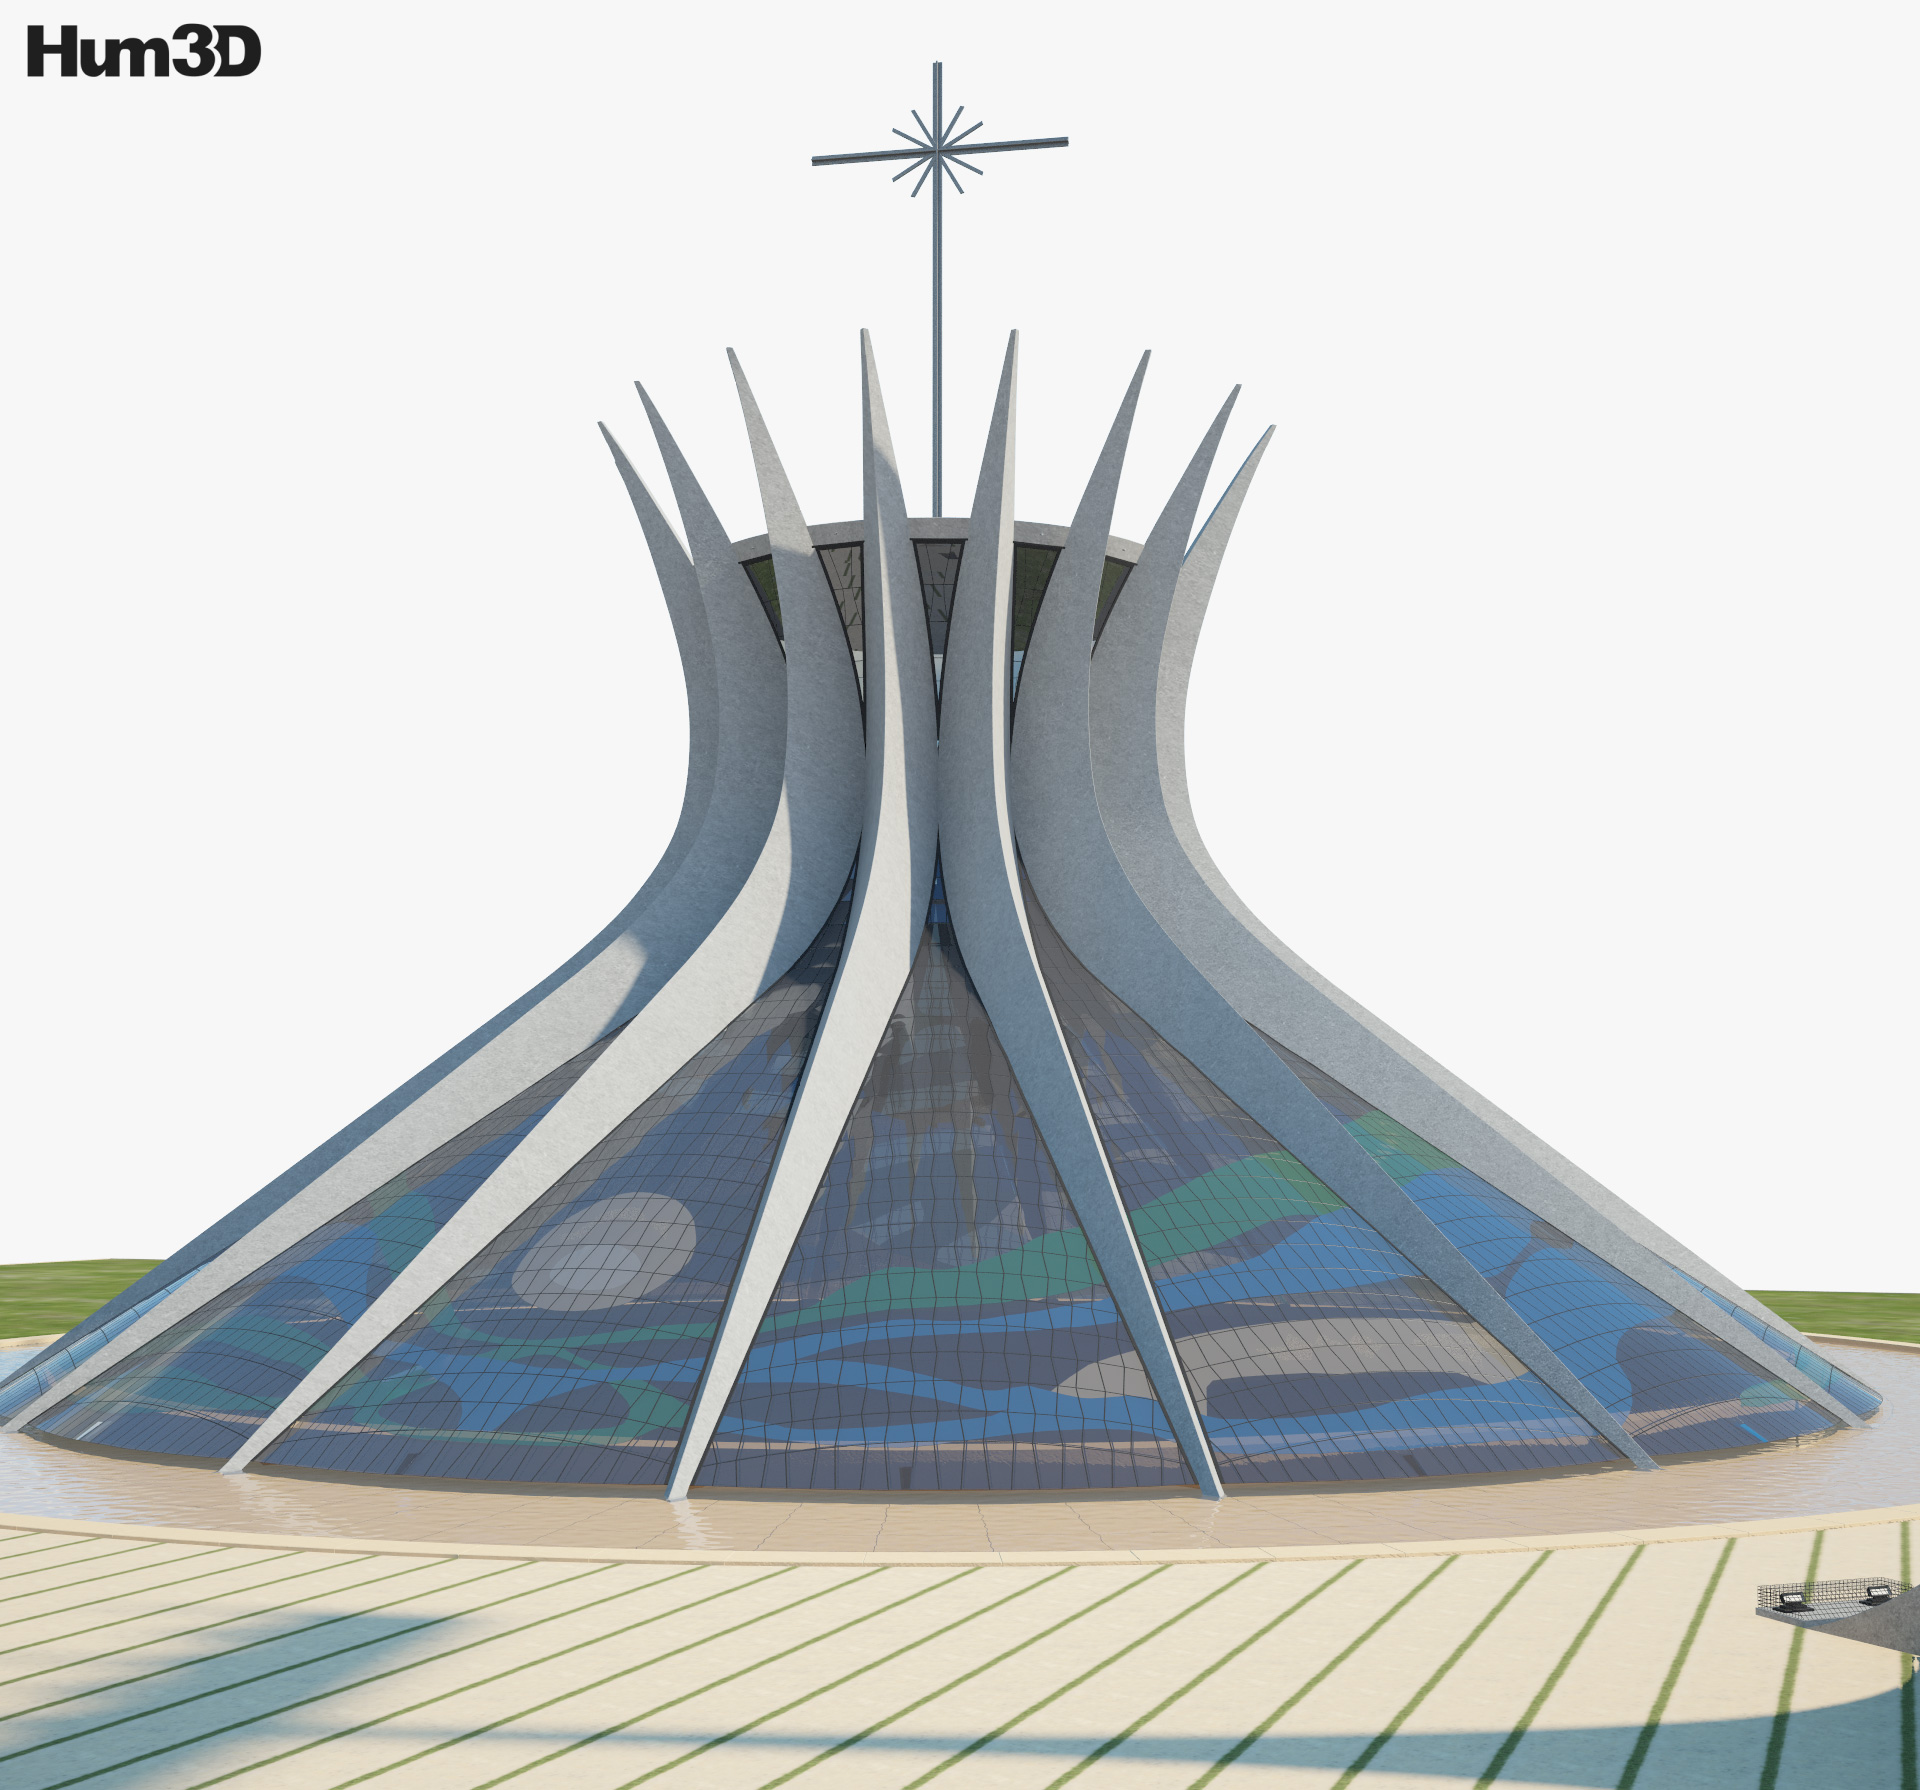 3D model of Cathedral of Brasilia